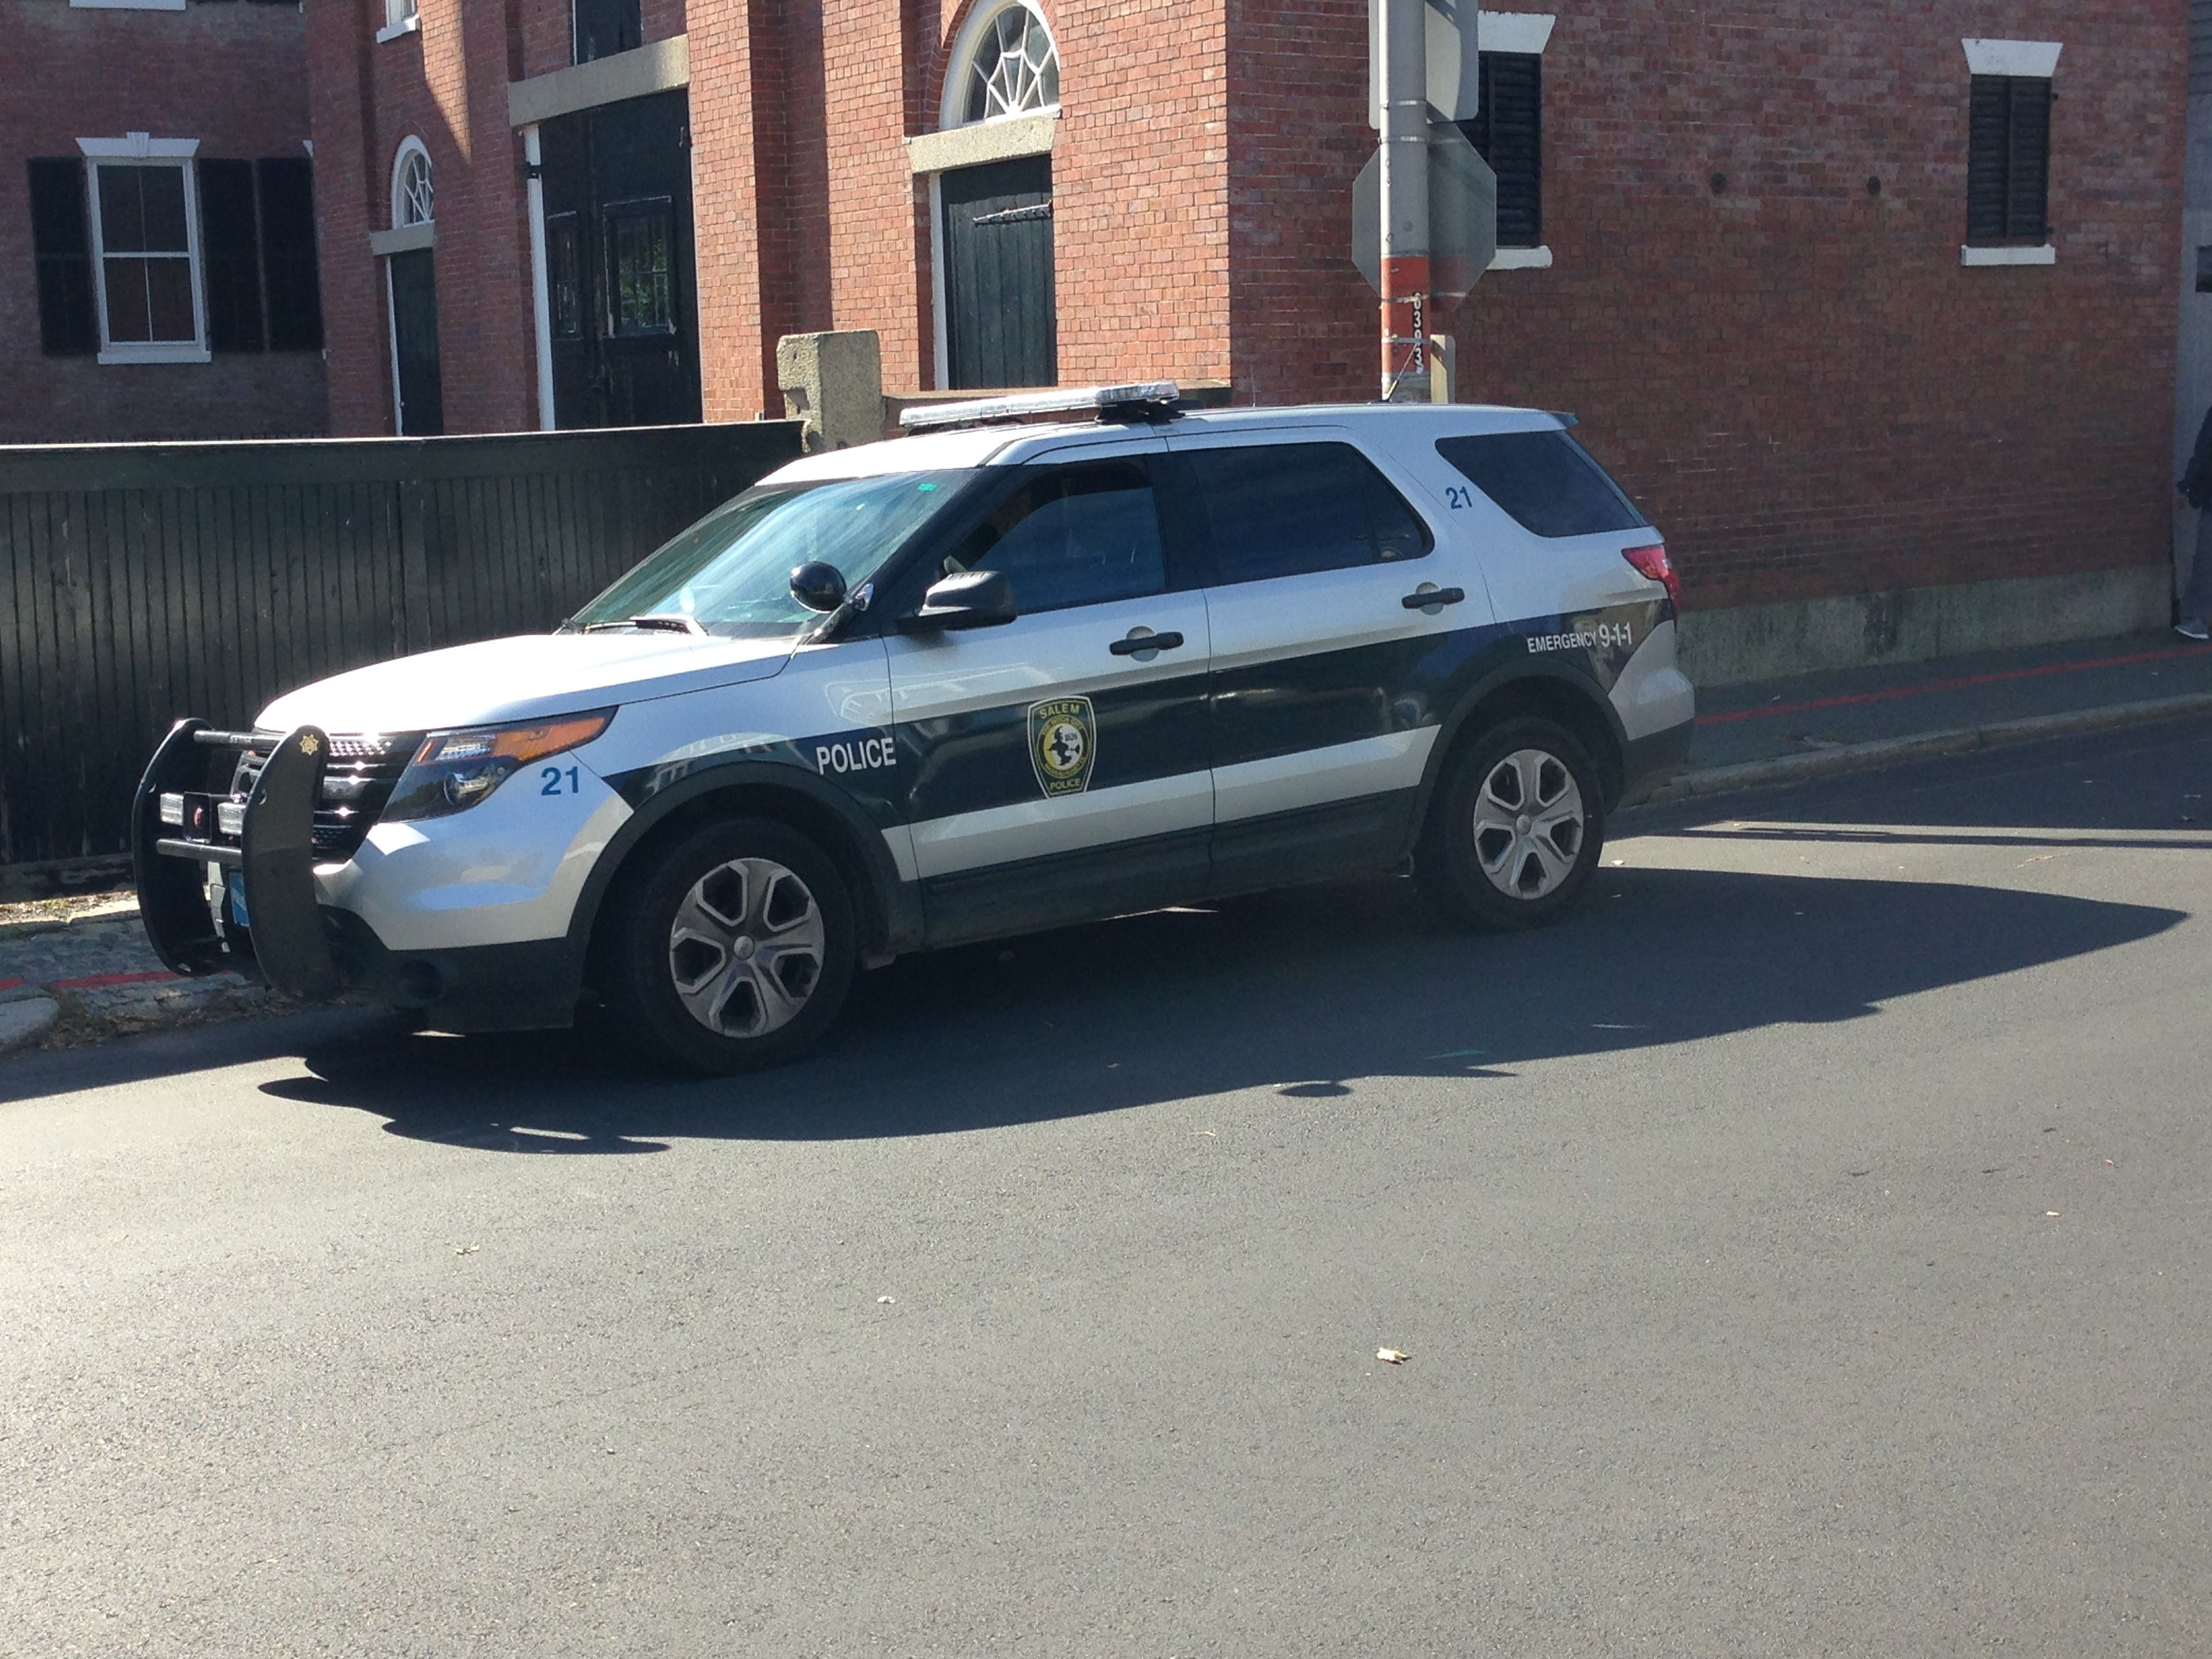 Salem Police Department Ford Police Interceptor Suv Massachusetts